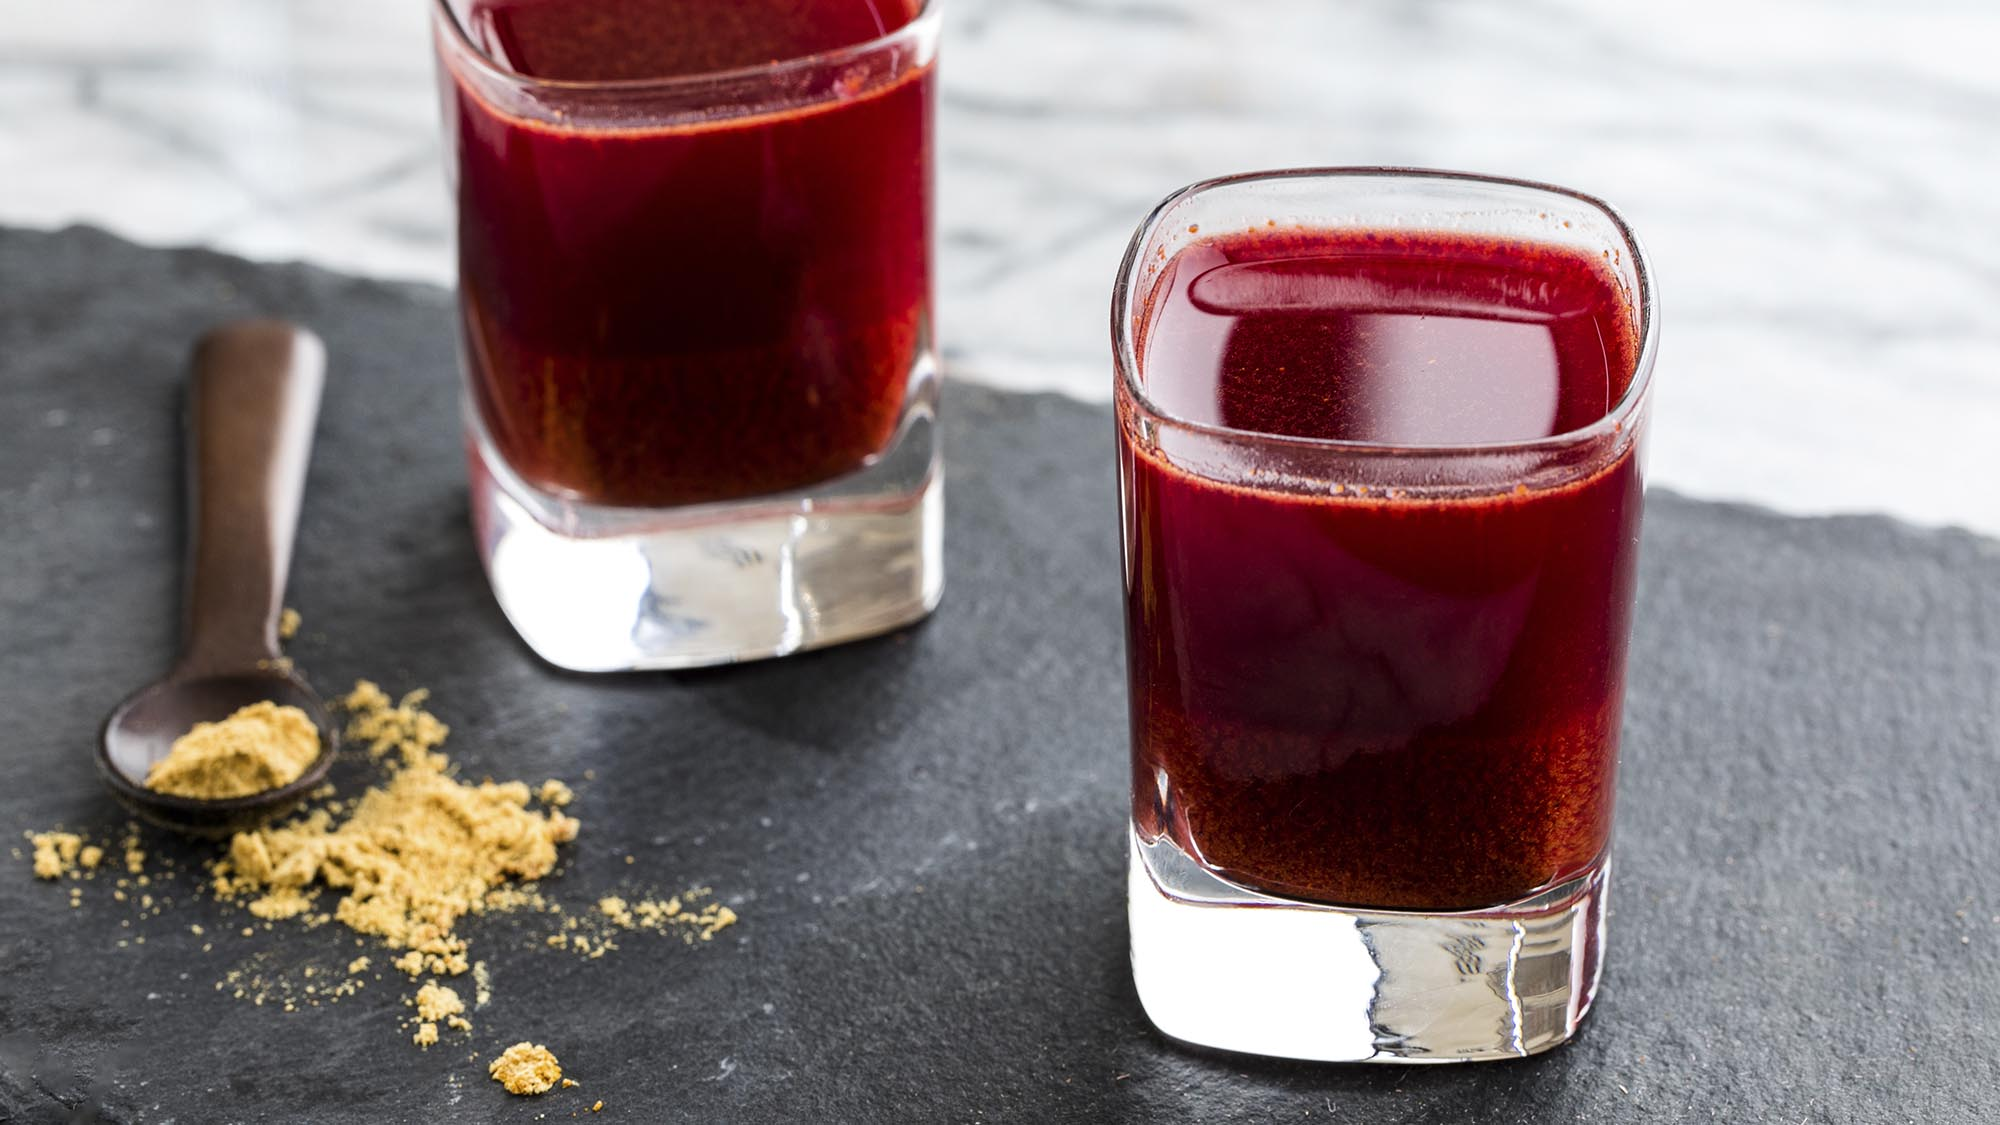 McCormick Ginger Turmeric and Beet Sipping Elixir